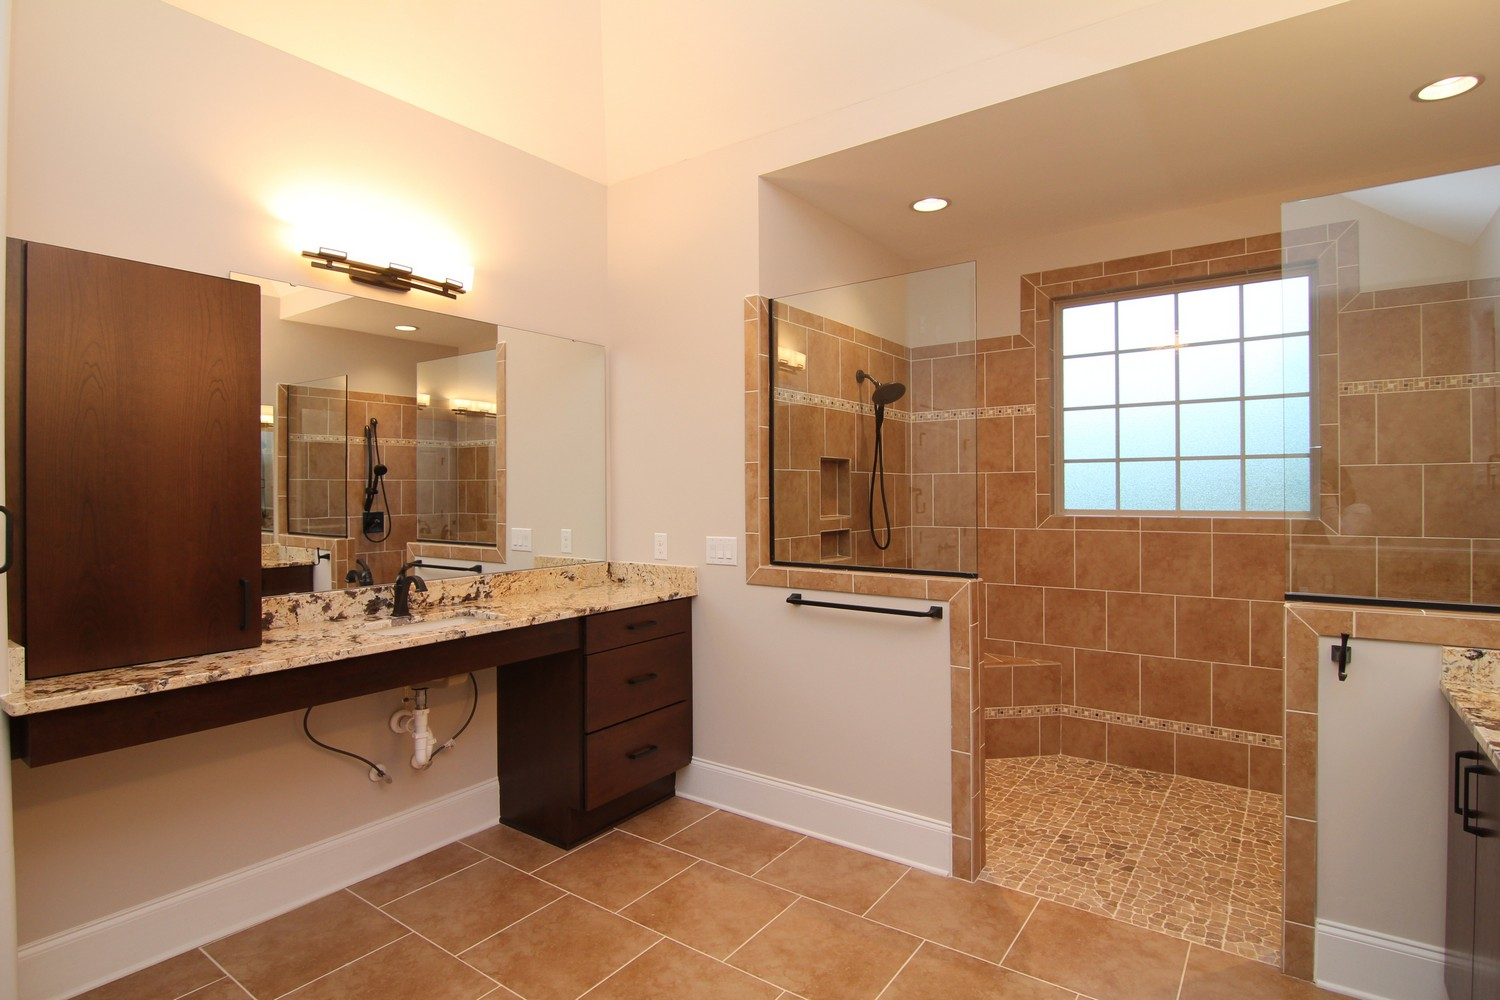 Example of a modified wheelchair accessible bathroom.